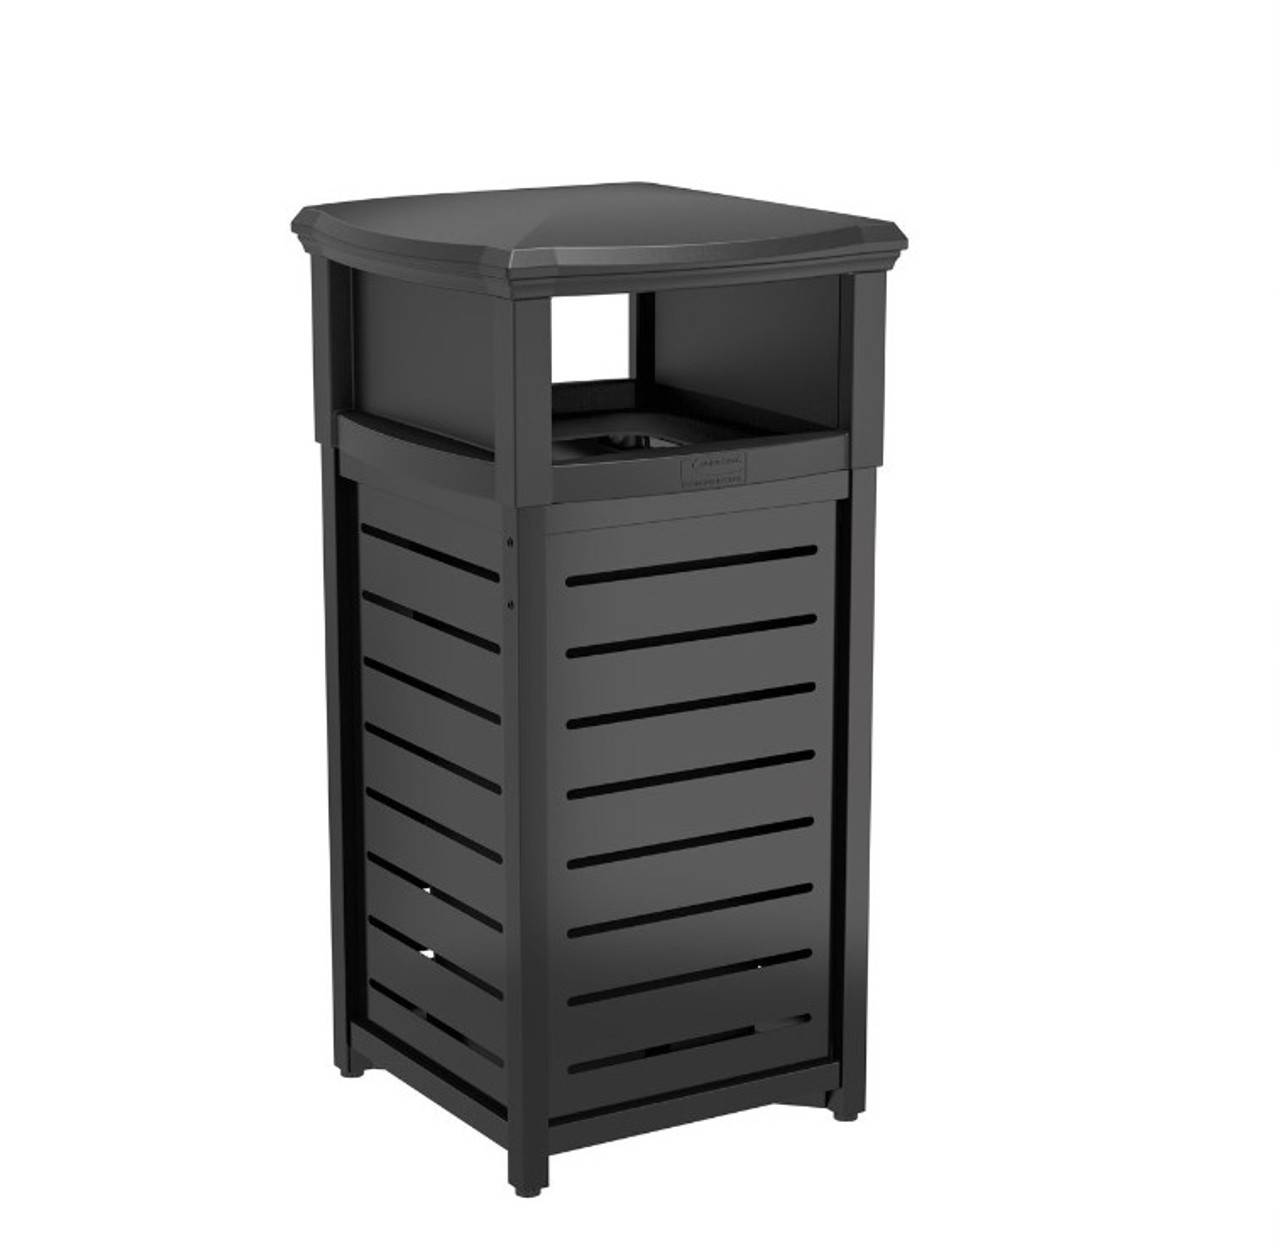 30 Gallon Square Thermoplastic Metal Trash Can with 2 Way Lid MTCSQ300